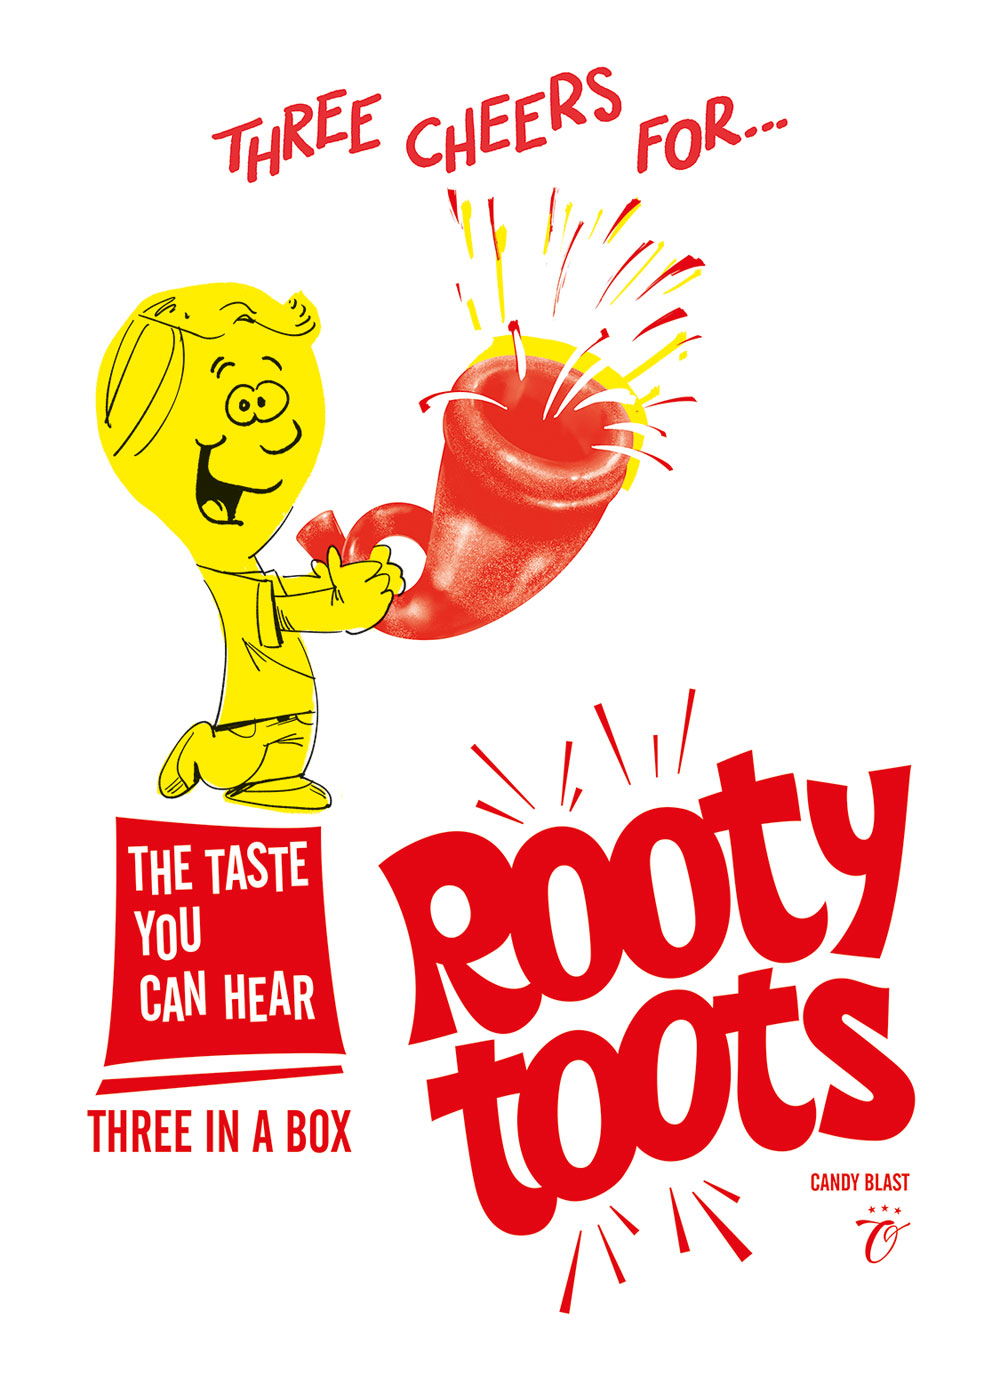 Rooty Toots candy - Advertisement